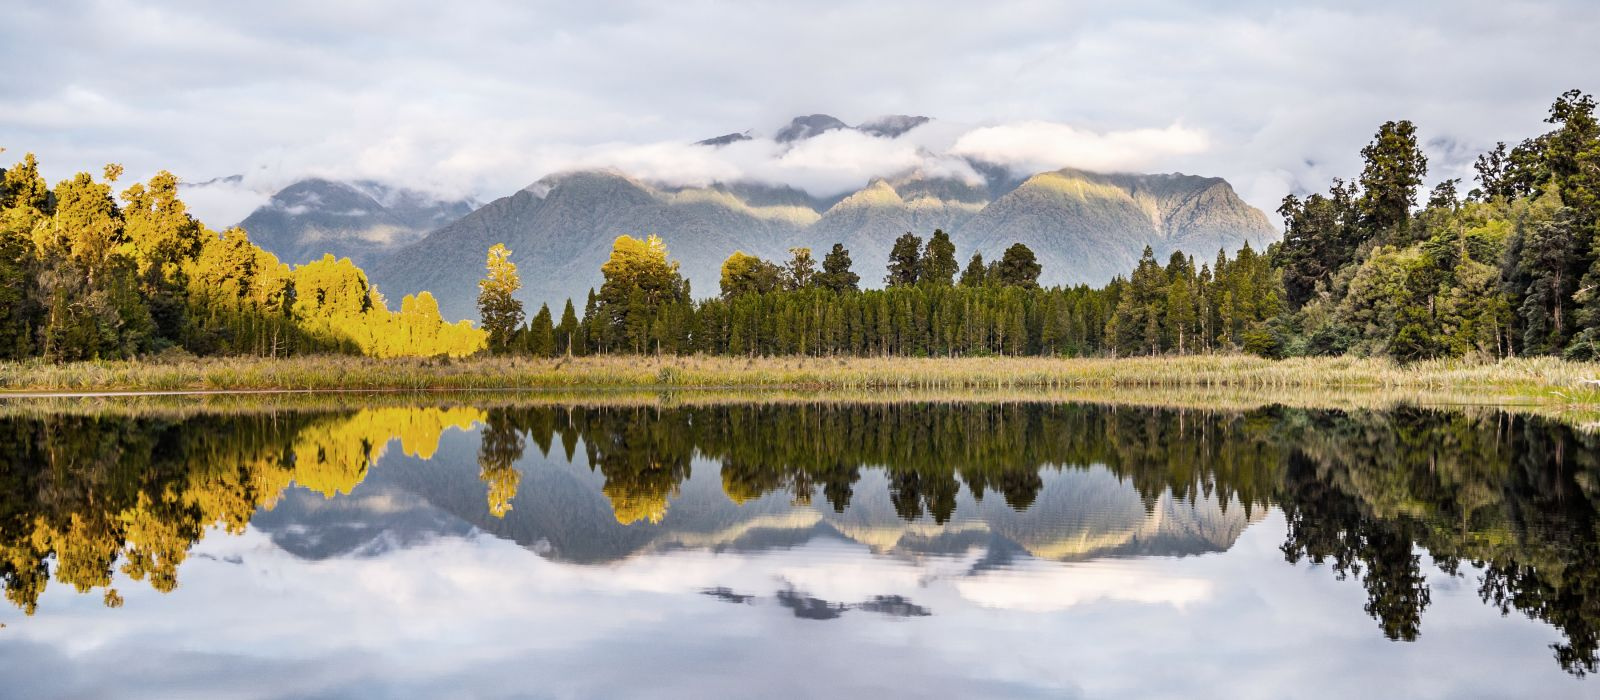 Enchanting Travels New Zealand Tours Lake Brunner and mountains